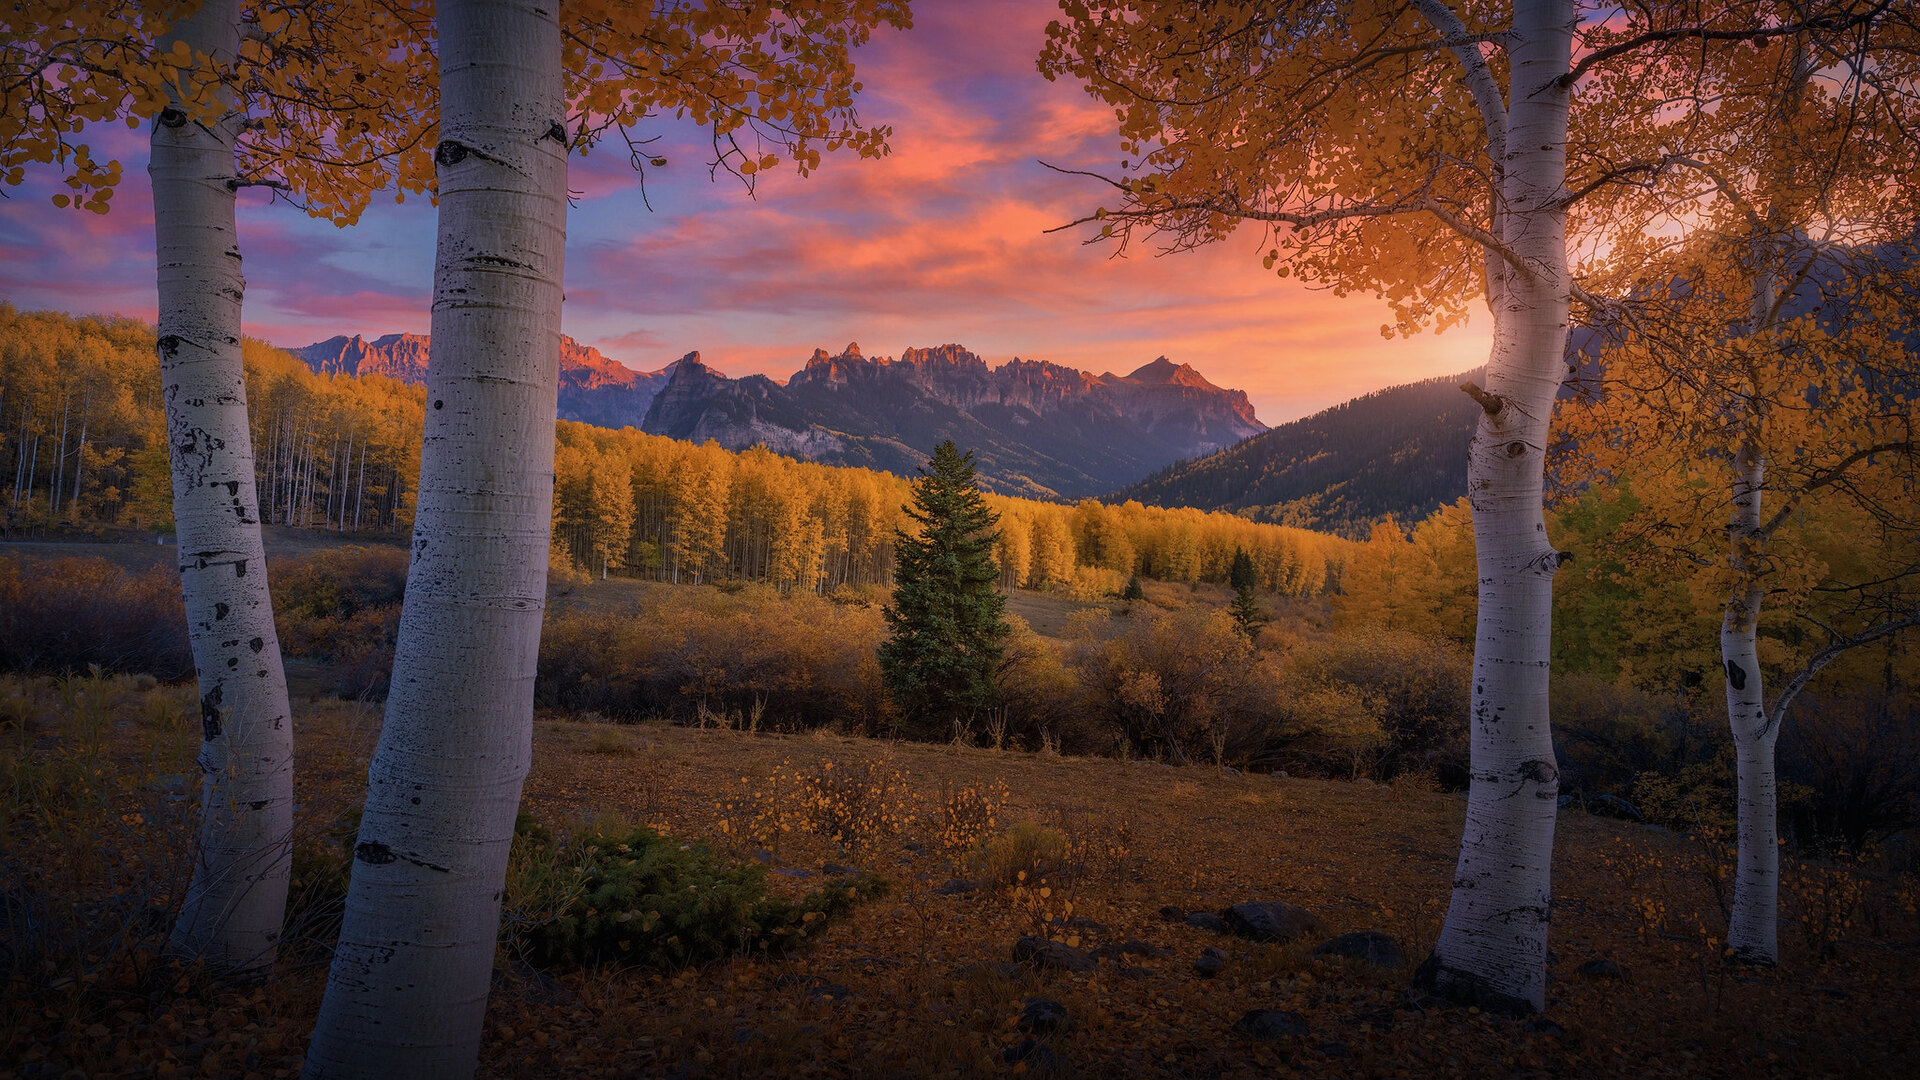 General 1920x1080 nature landscape sunset fall trees sky clouds mountains birch